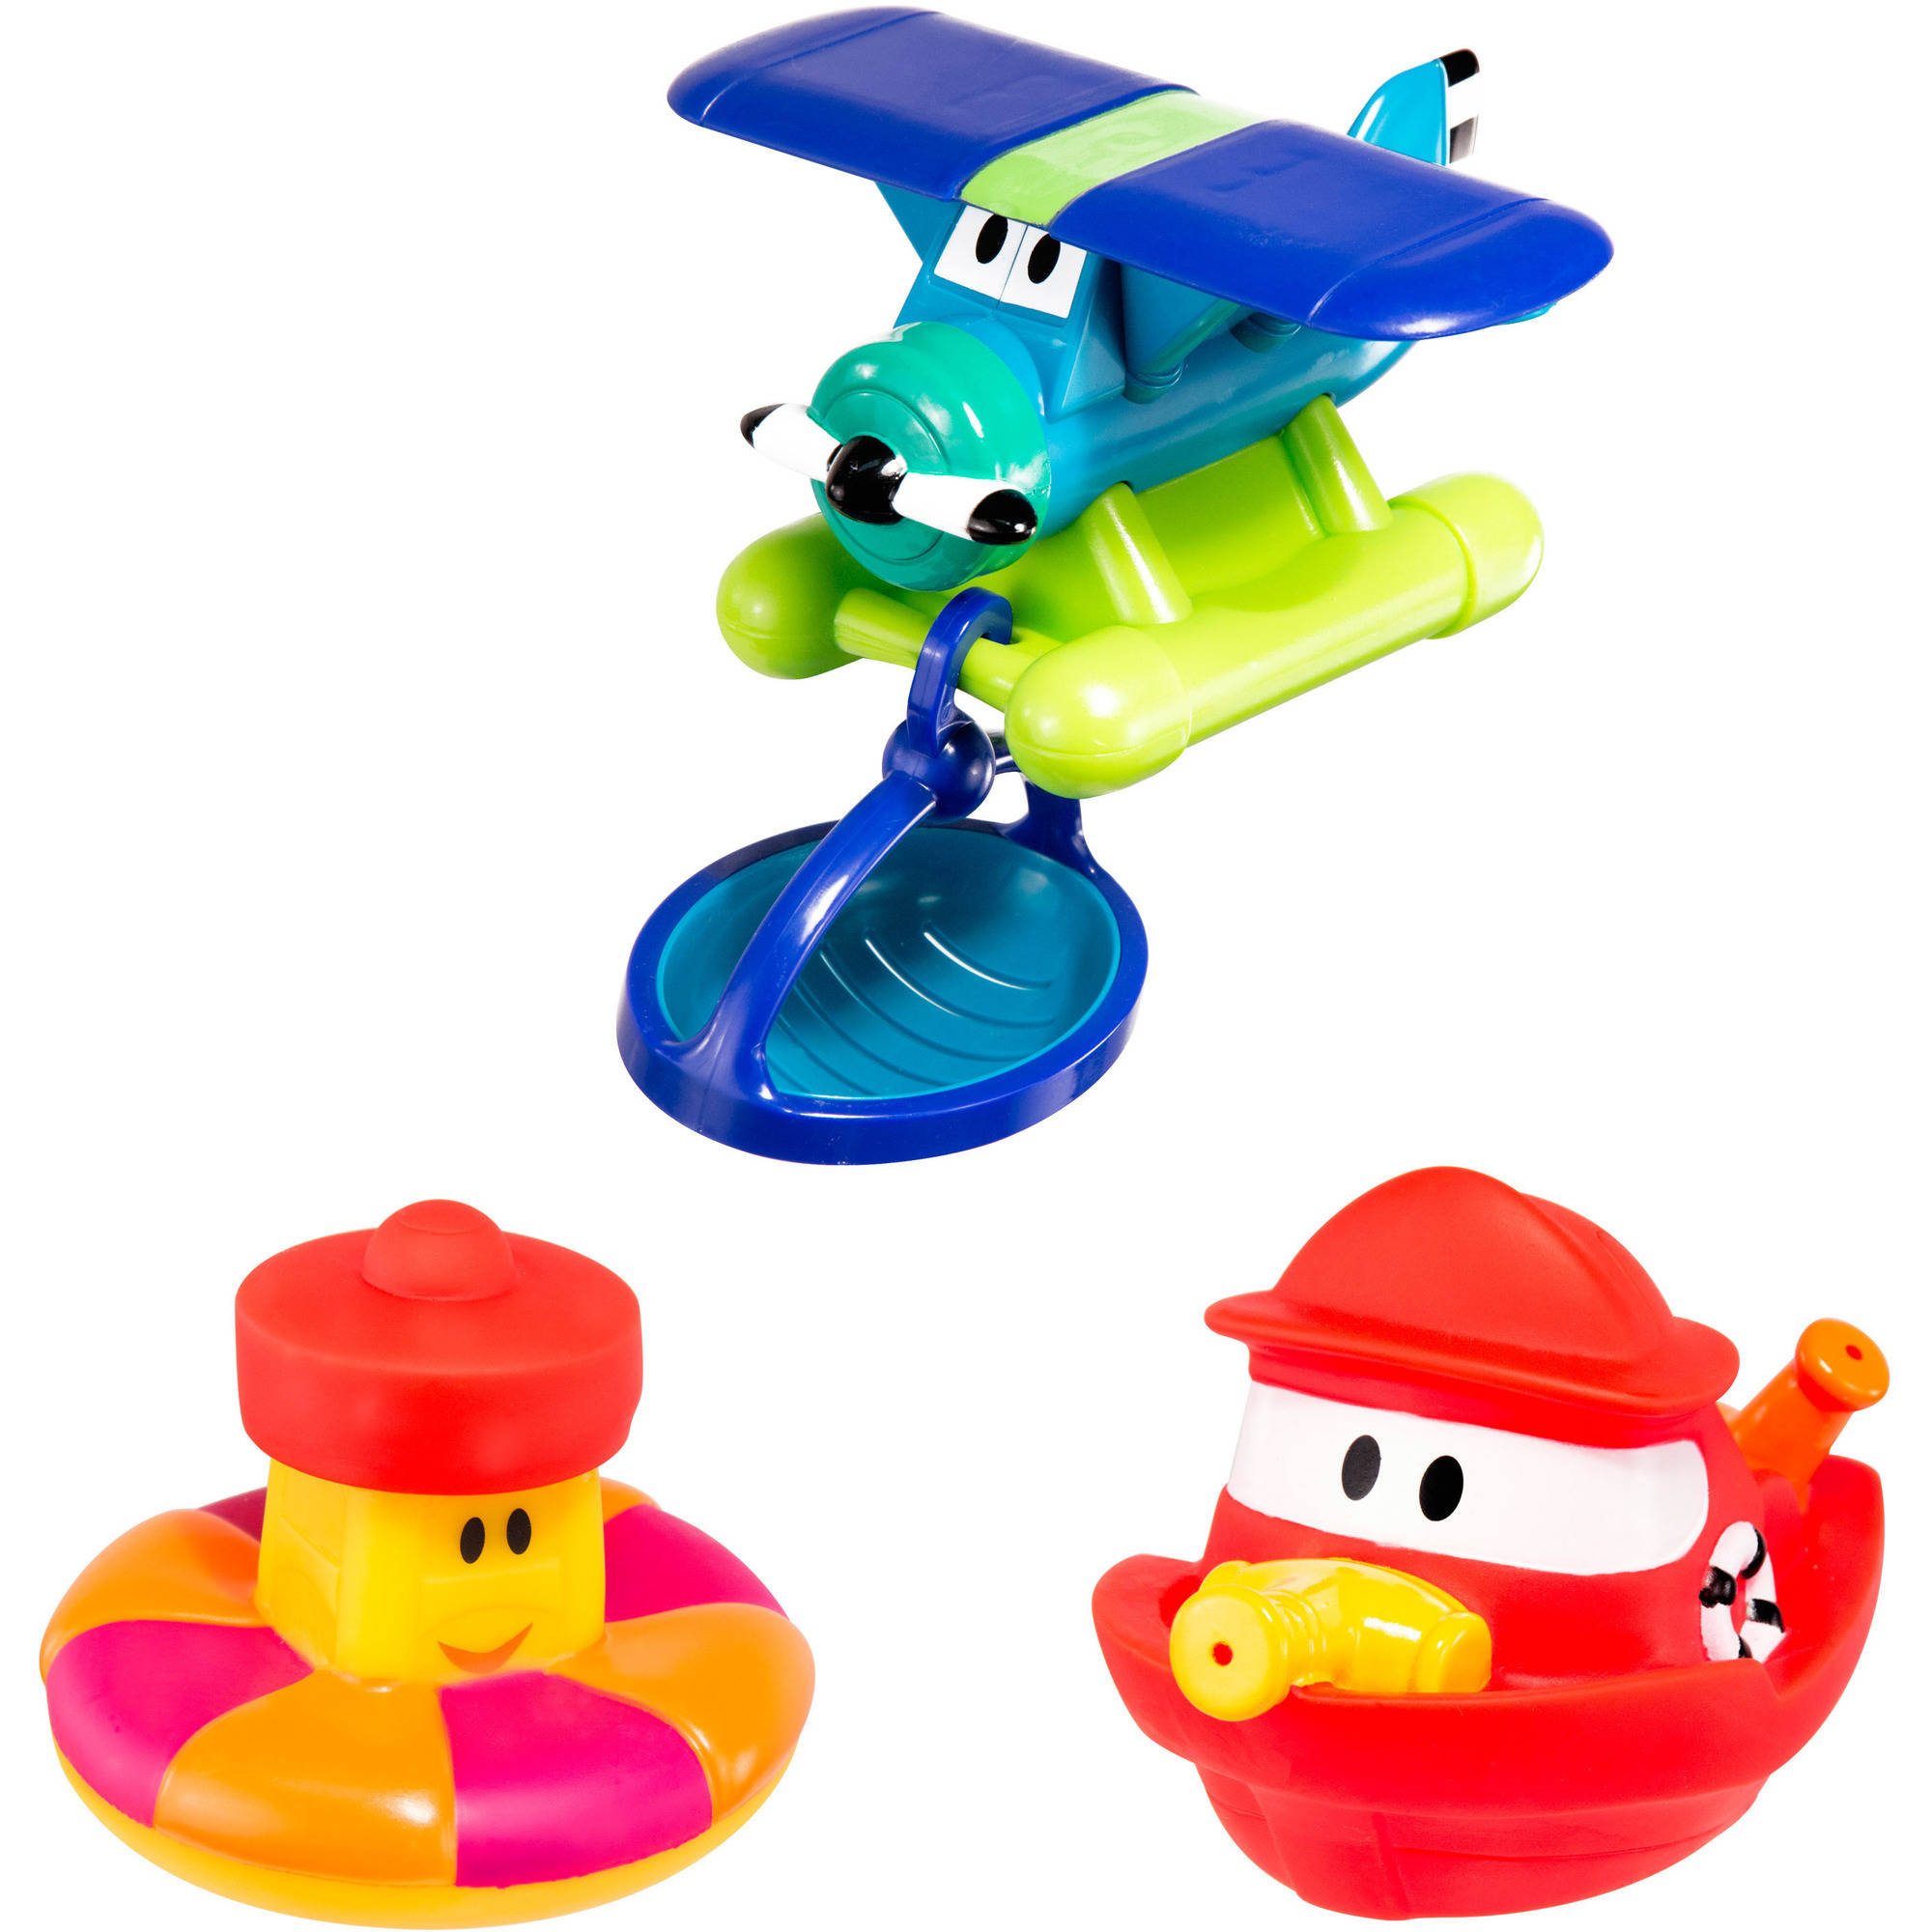 Spark Rescue Set Bath Toy, 4 Pieces by Sassy